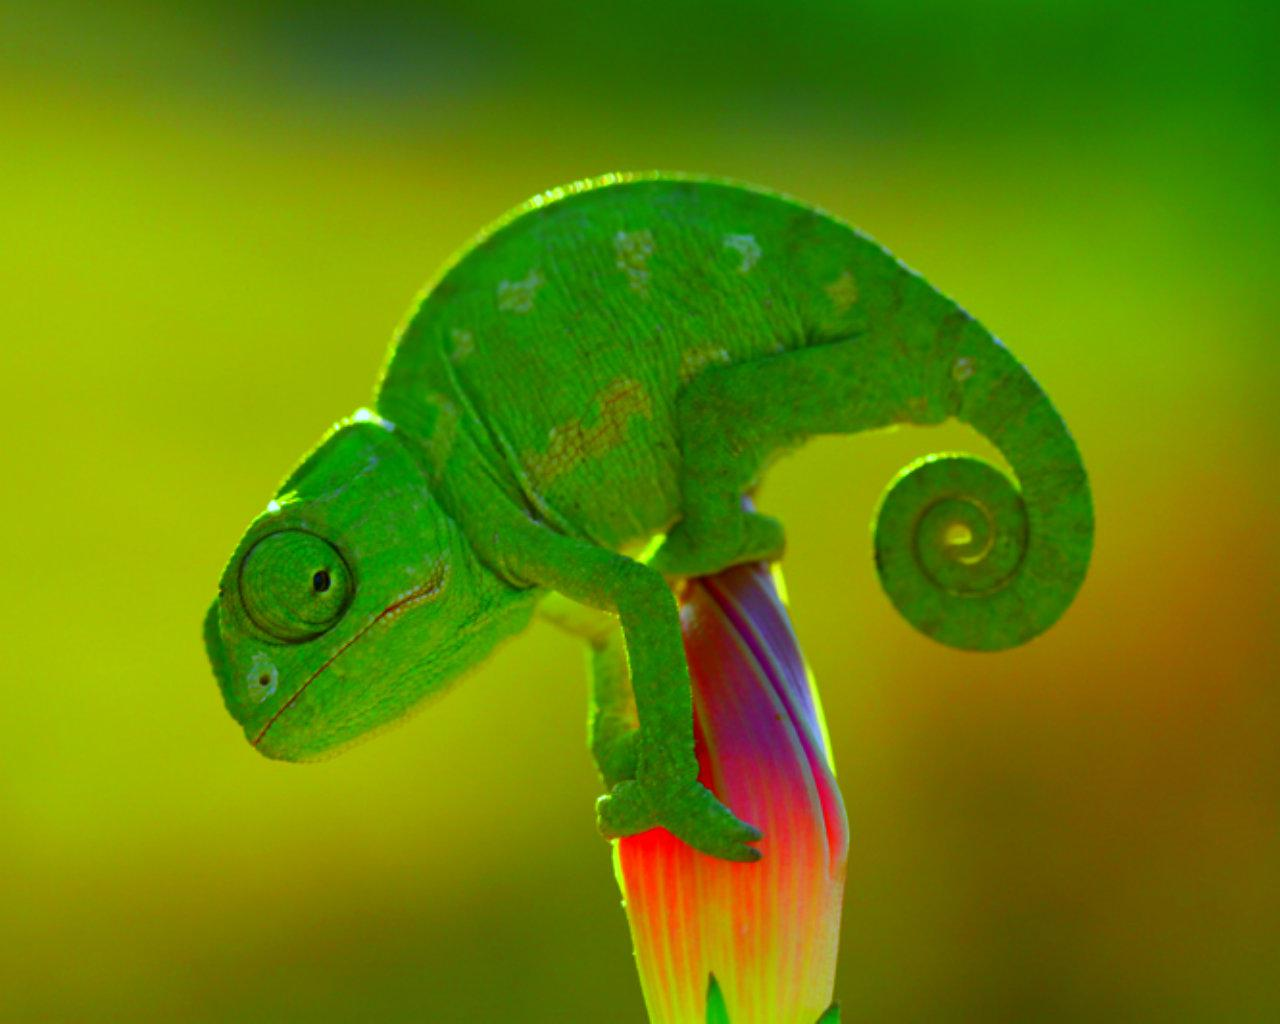 Small Chameleon on a Flower 289.9 Kb